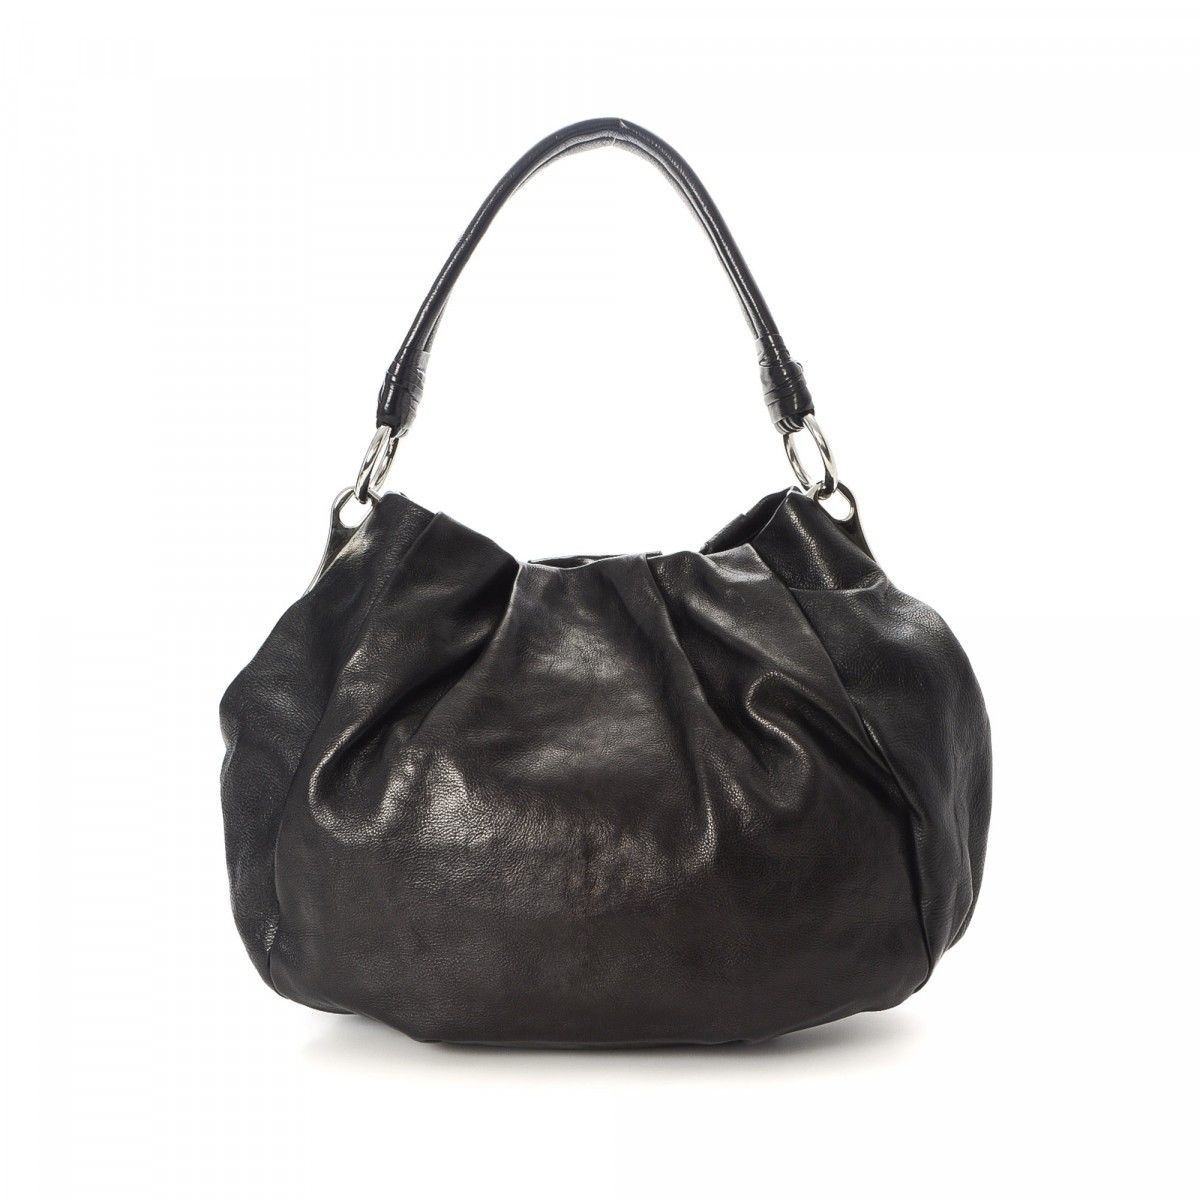 fa9a9474e16e3f Cervo Hobo Handbag. Prada Br5096 Vitello Phenix Leather Hobo Bag Black